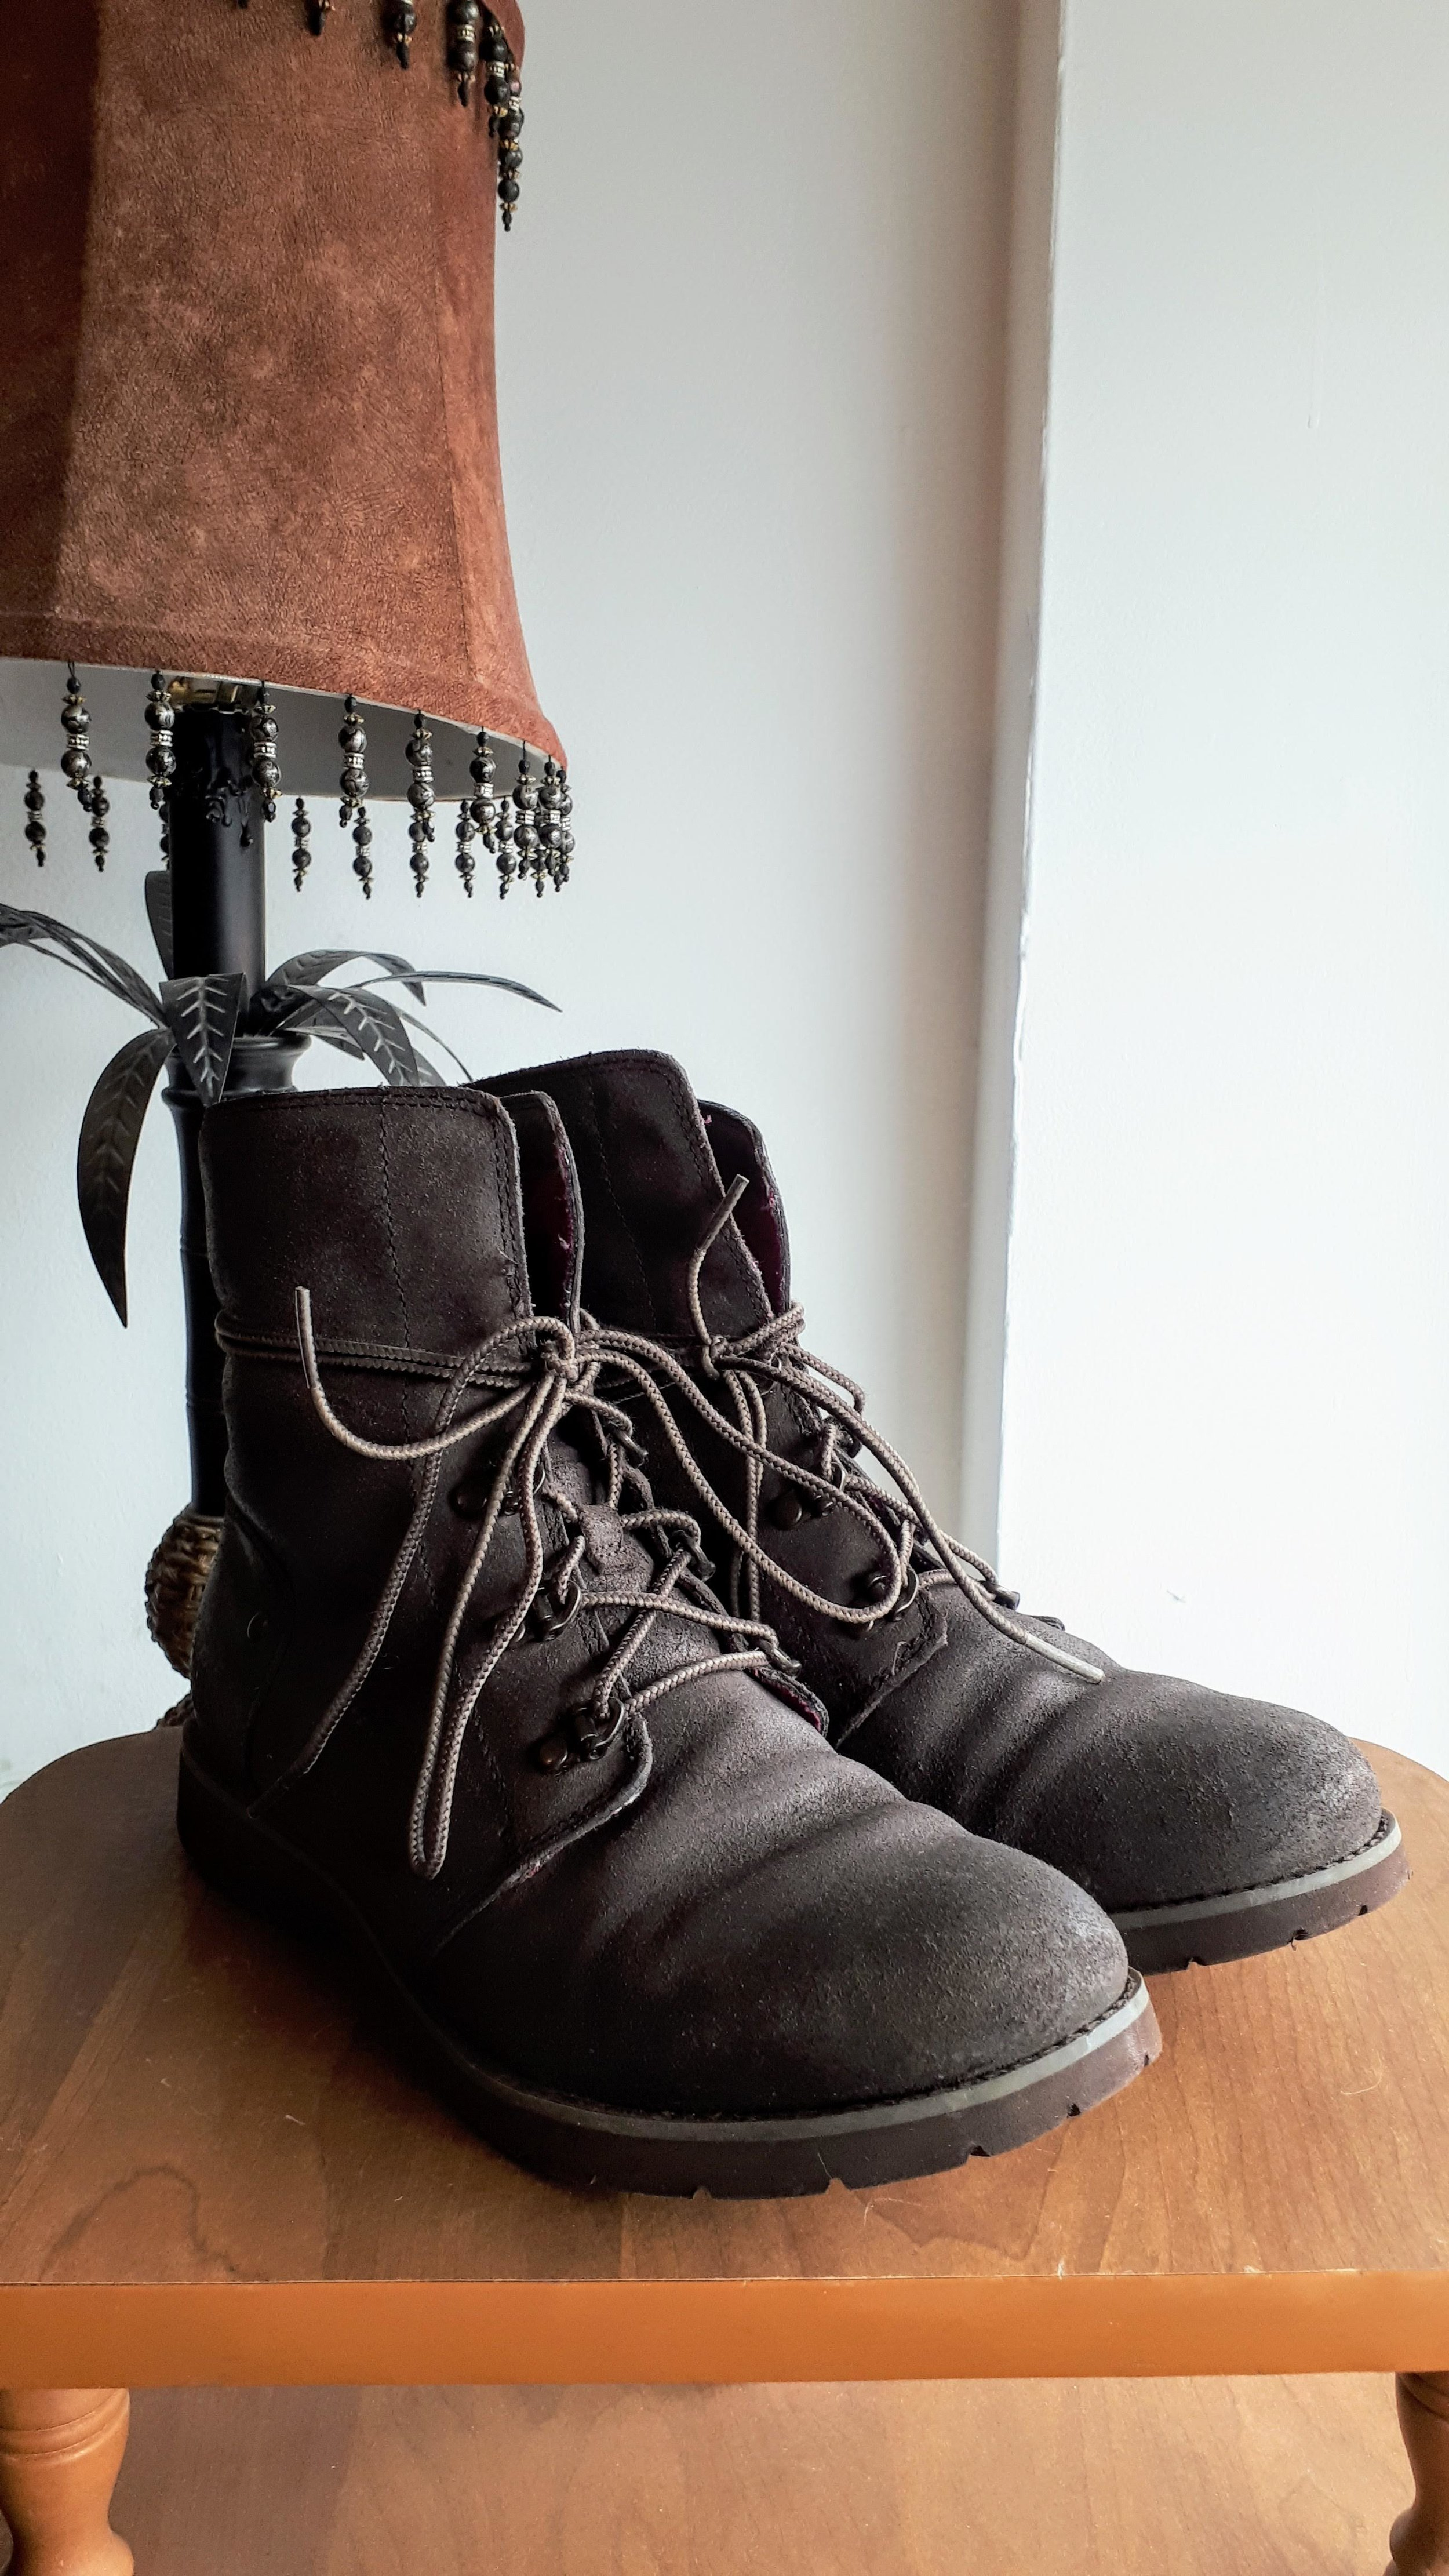 North Face boots; Size 8.5, $42